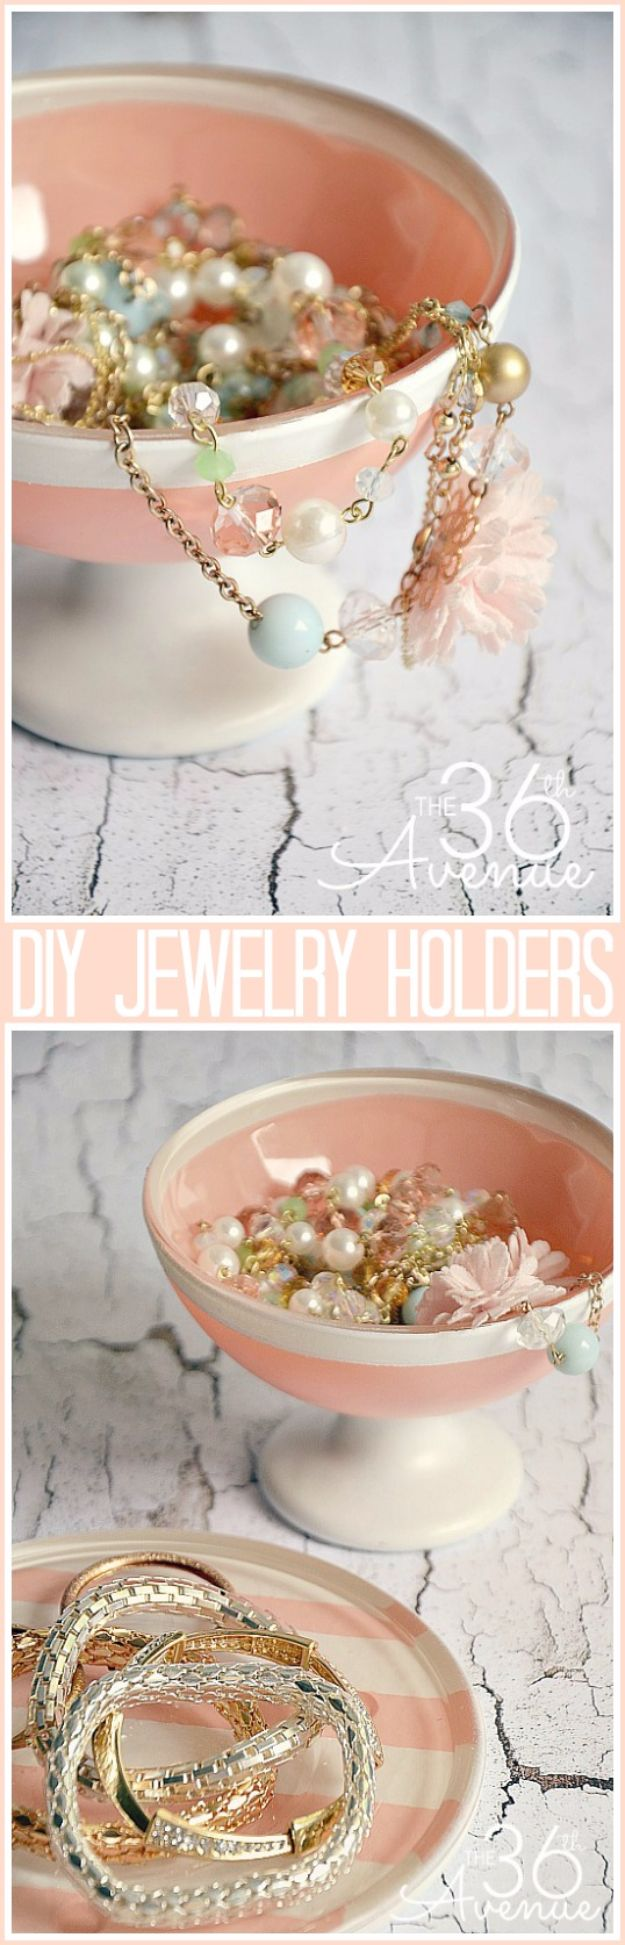 Last Minute Christmas Gifts - DIY Jewelry Holder - Quick DIY Gift Ideas and Easy Christmas Presents To Make for Mom, Dad, Family and Friends - Dollar Store Crafts and Cheap Homemade Gifts